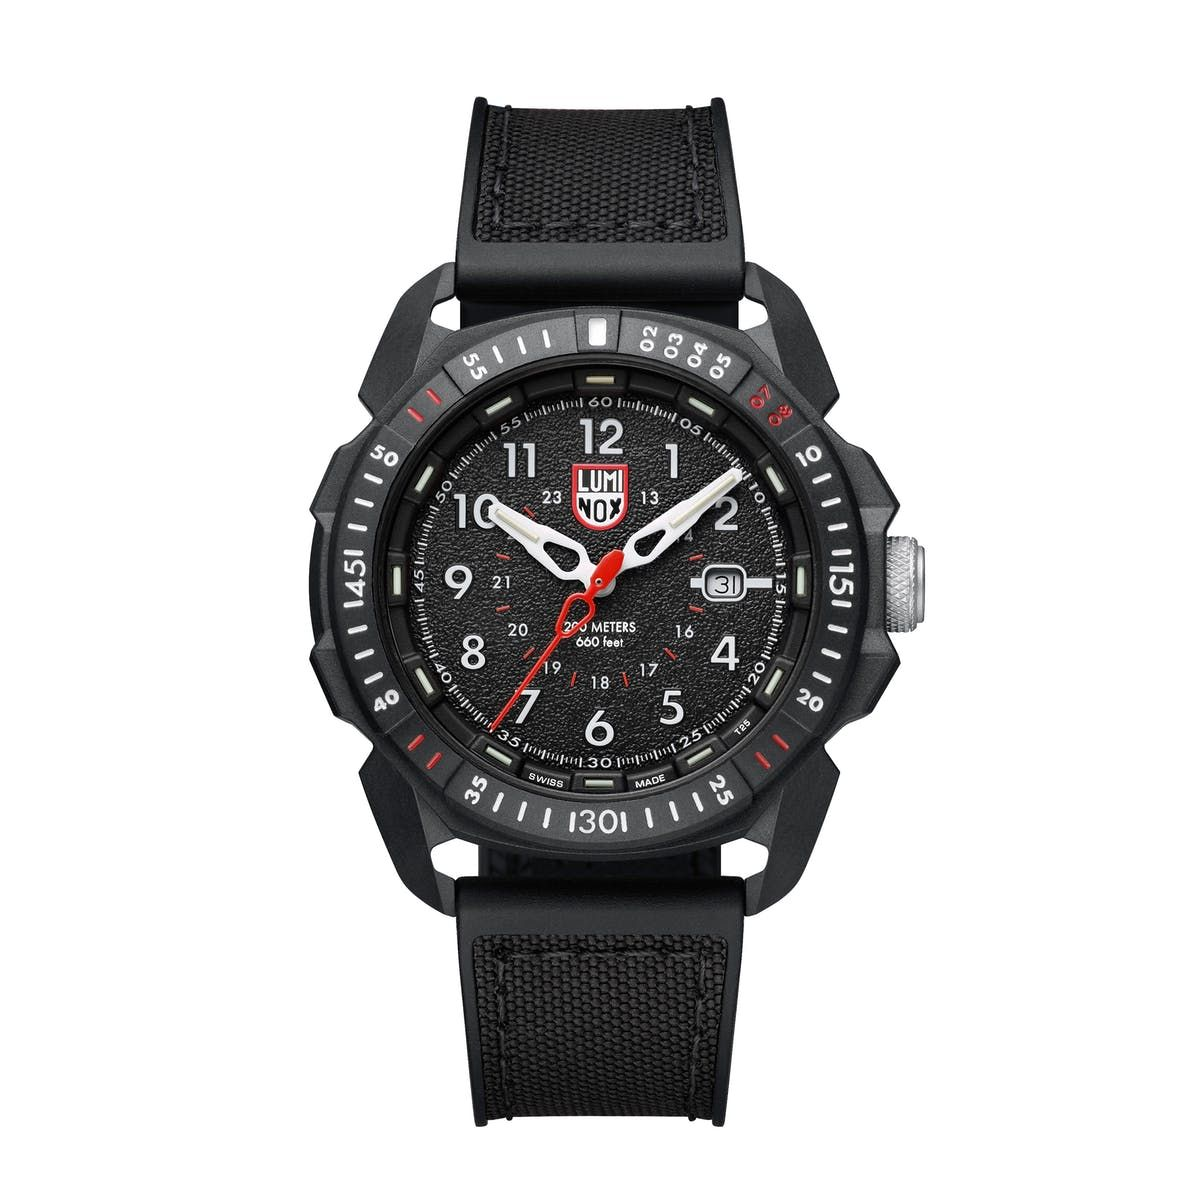 Icesar arctic 1000 watches for men rugged watches watches